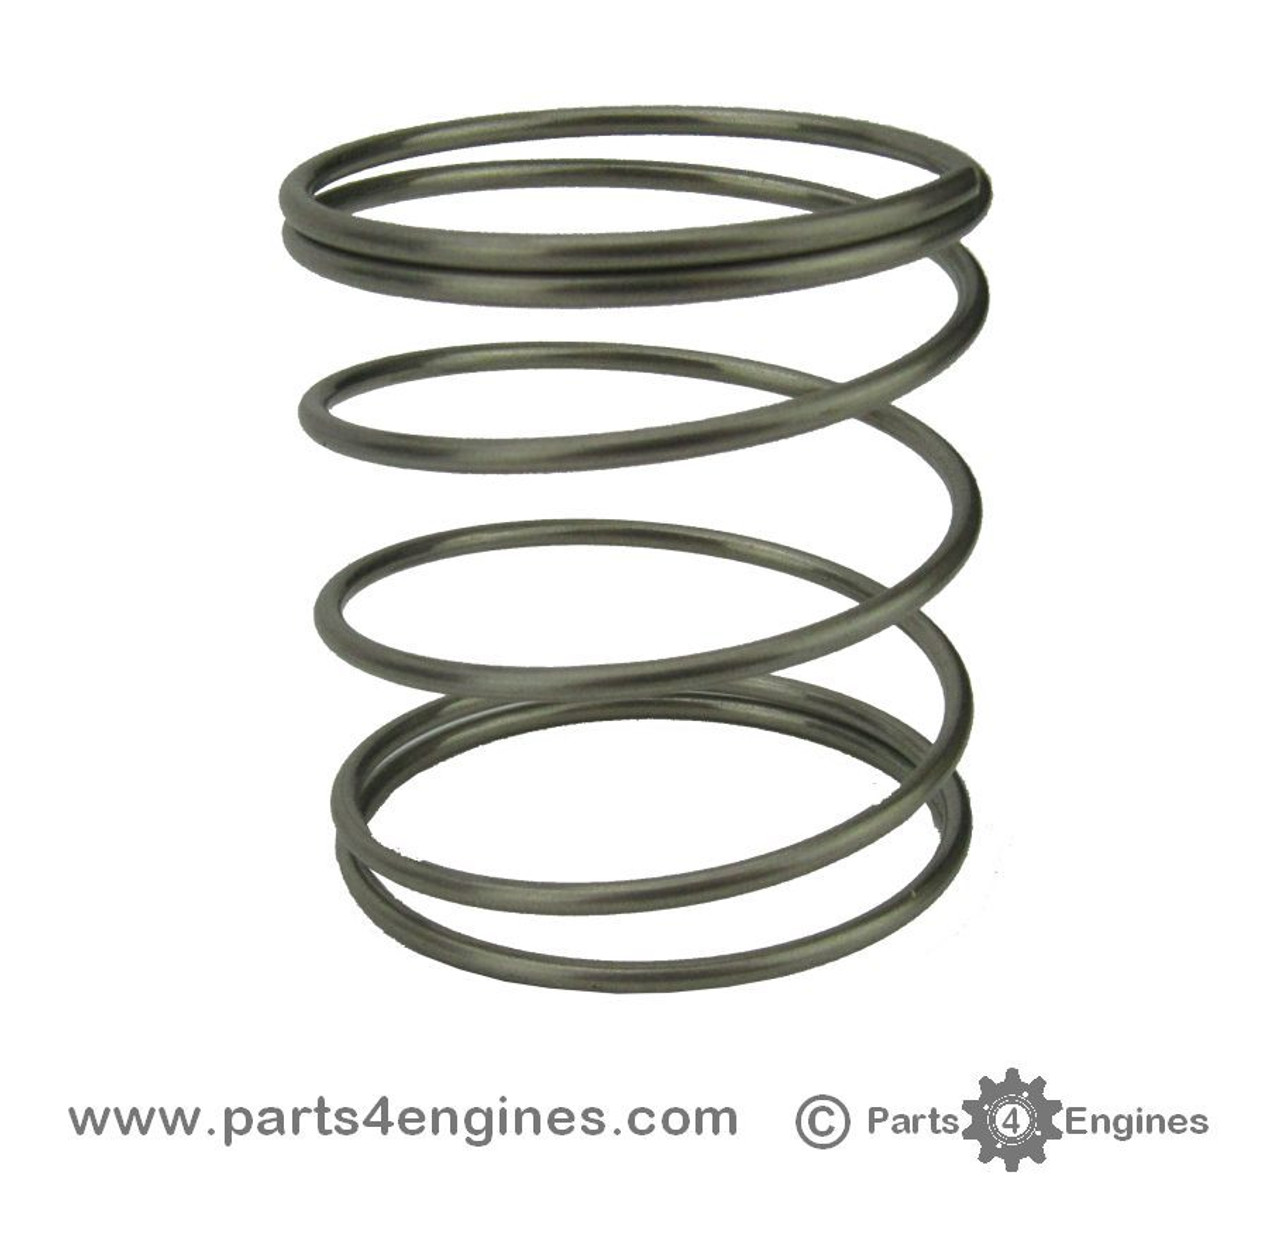 Perkins Perama M20 Thermostat Retaining Spring